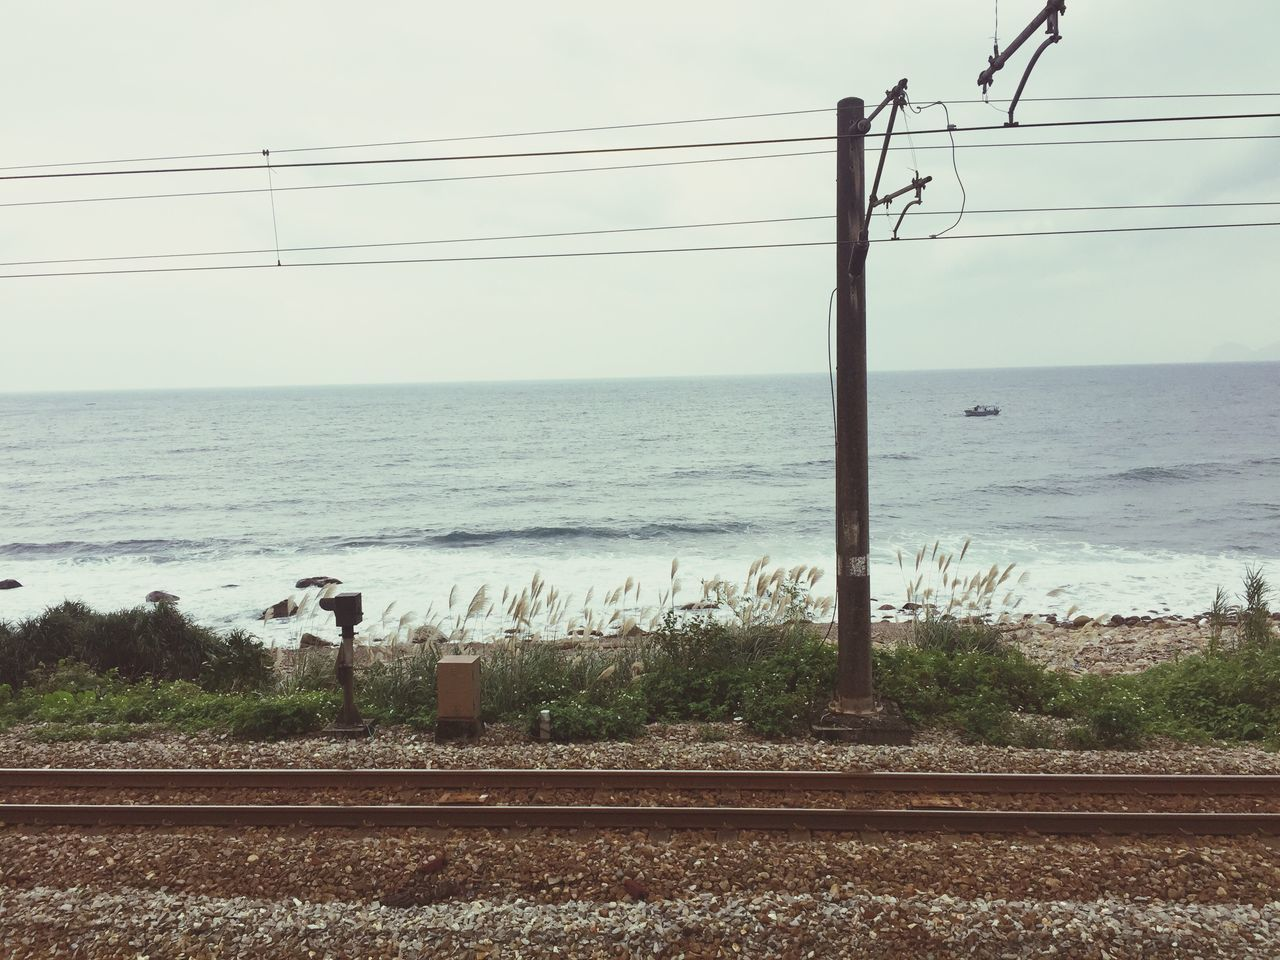 cable, railroad track, power line, rail transportation, transportation, sea, sky, connection, electricity pylon, water, electricity, nature, technology, day, outdoors, power supply, clear sky, no people, scenics, horizon over water, beauty in nature